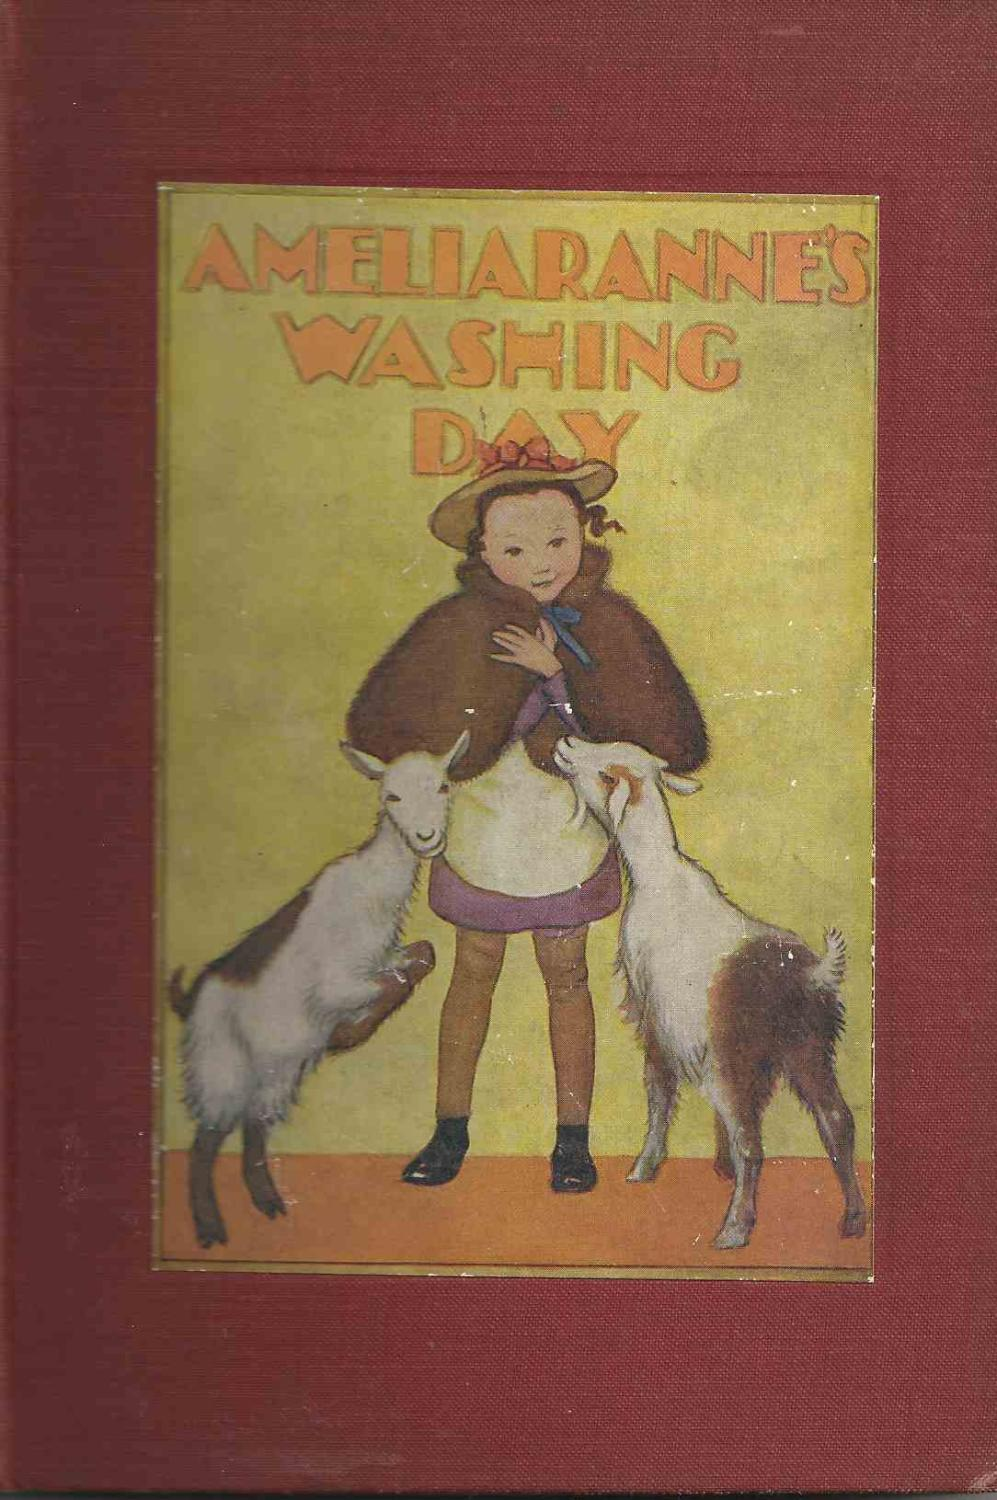 Ameliaranne's Washing Day , Hardcover Hardback, 207mm x 140mm maroon decorated boards, black titles, first edition, 48pp. Colour illustrations.Good/NoWrapper. Book has been read, different